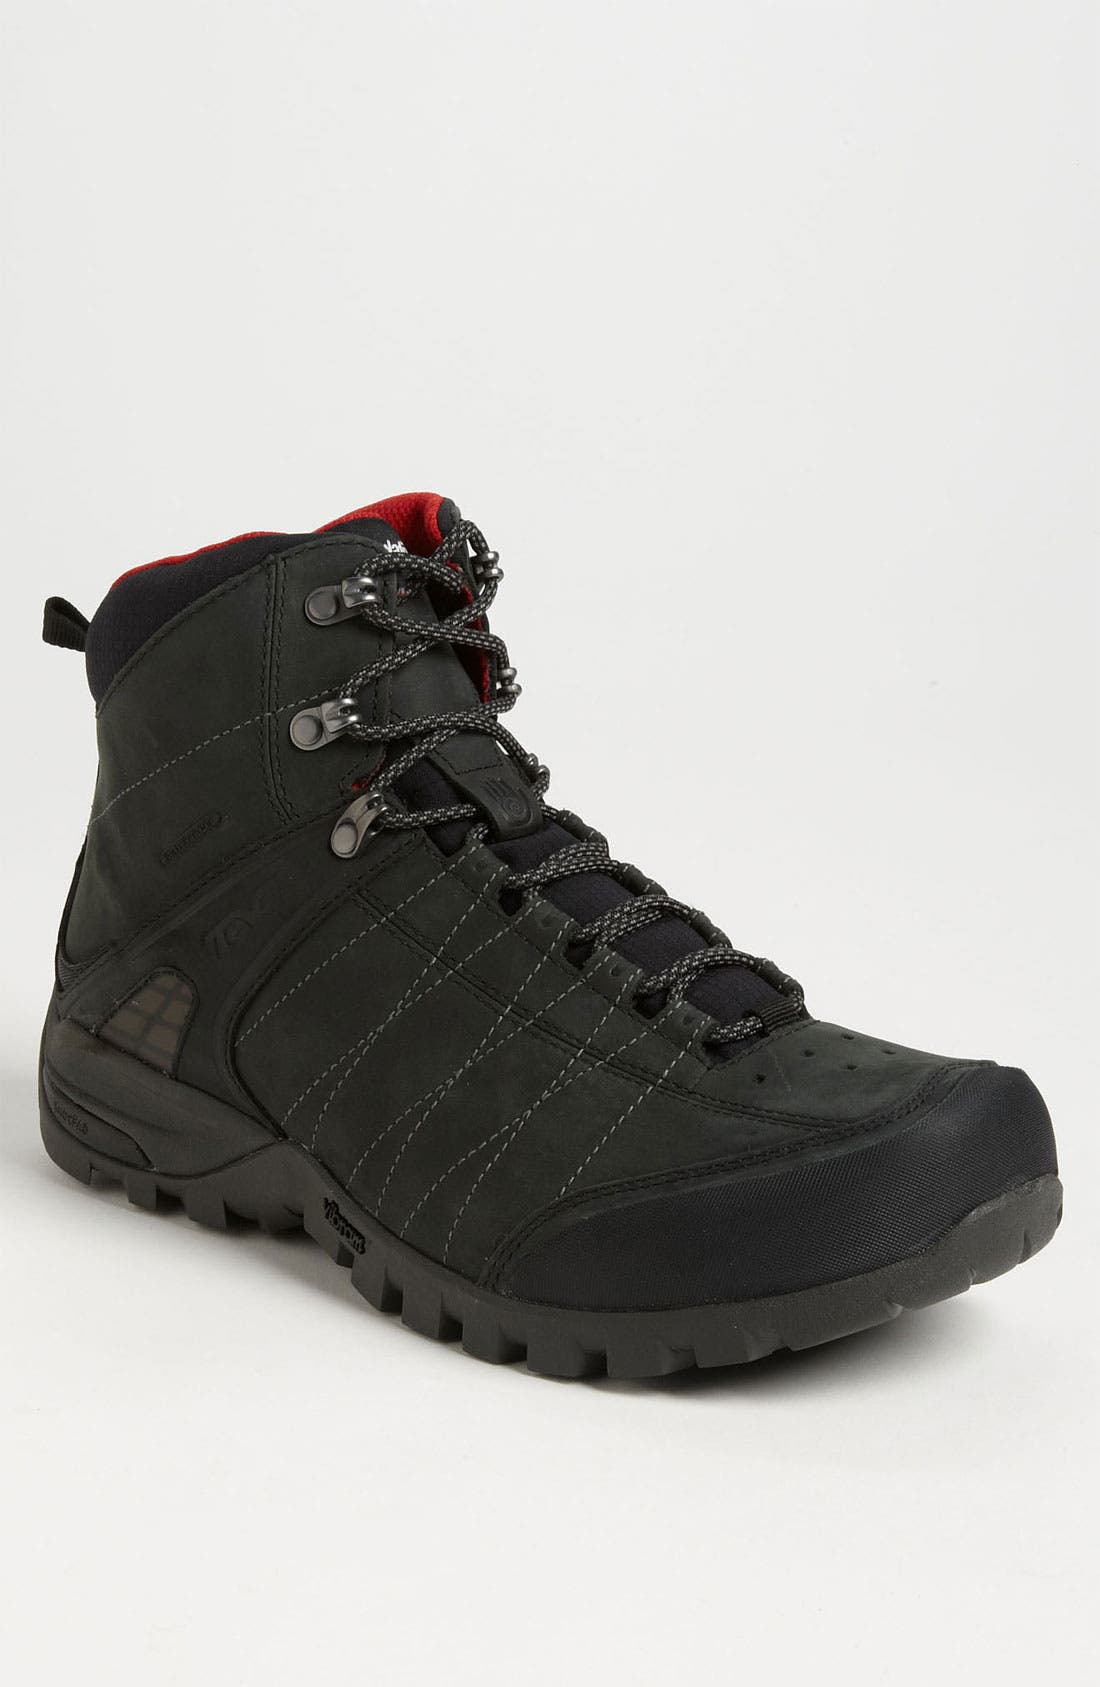 Alternate Image 1 Selected - Teva 'Riva Winter' Boot (Online Only)